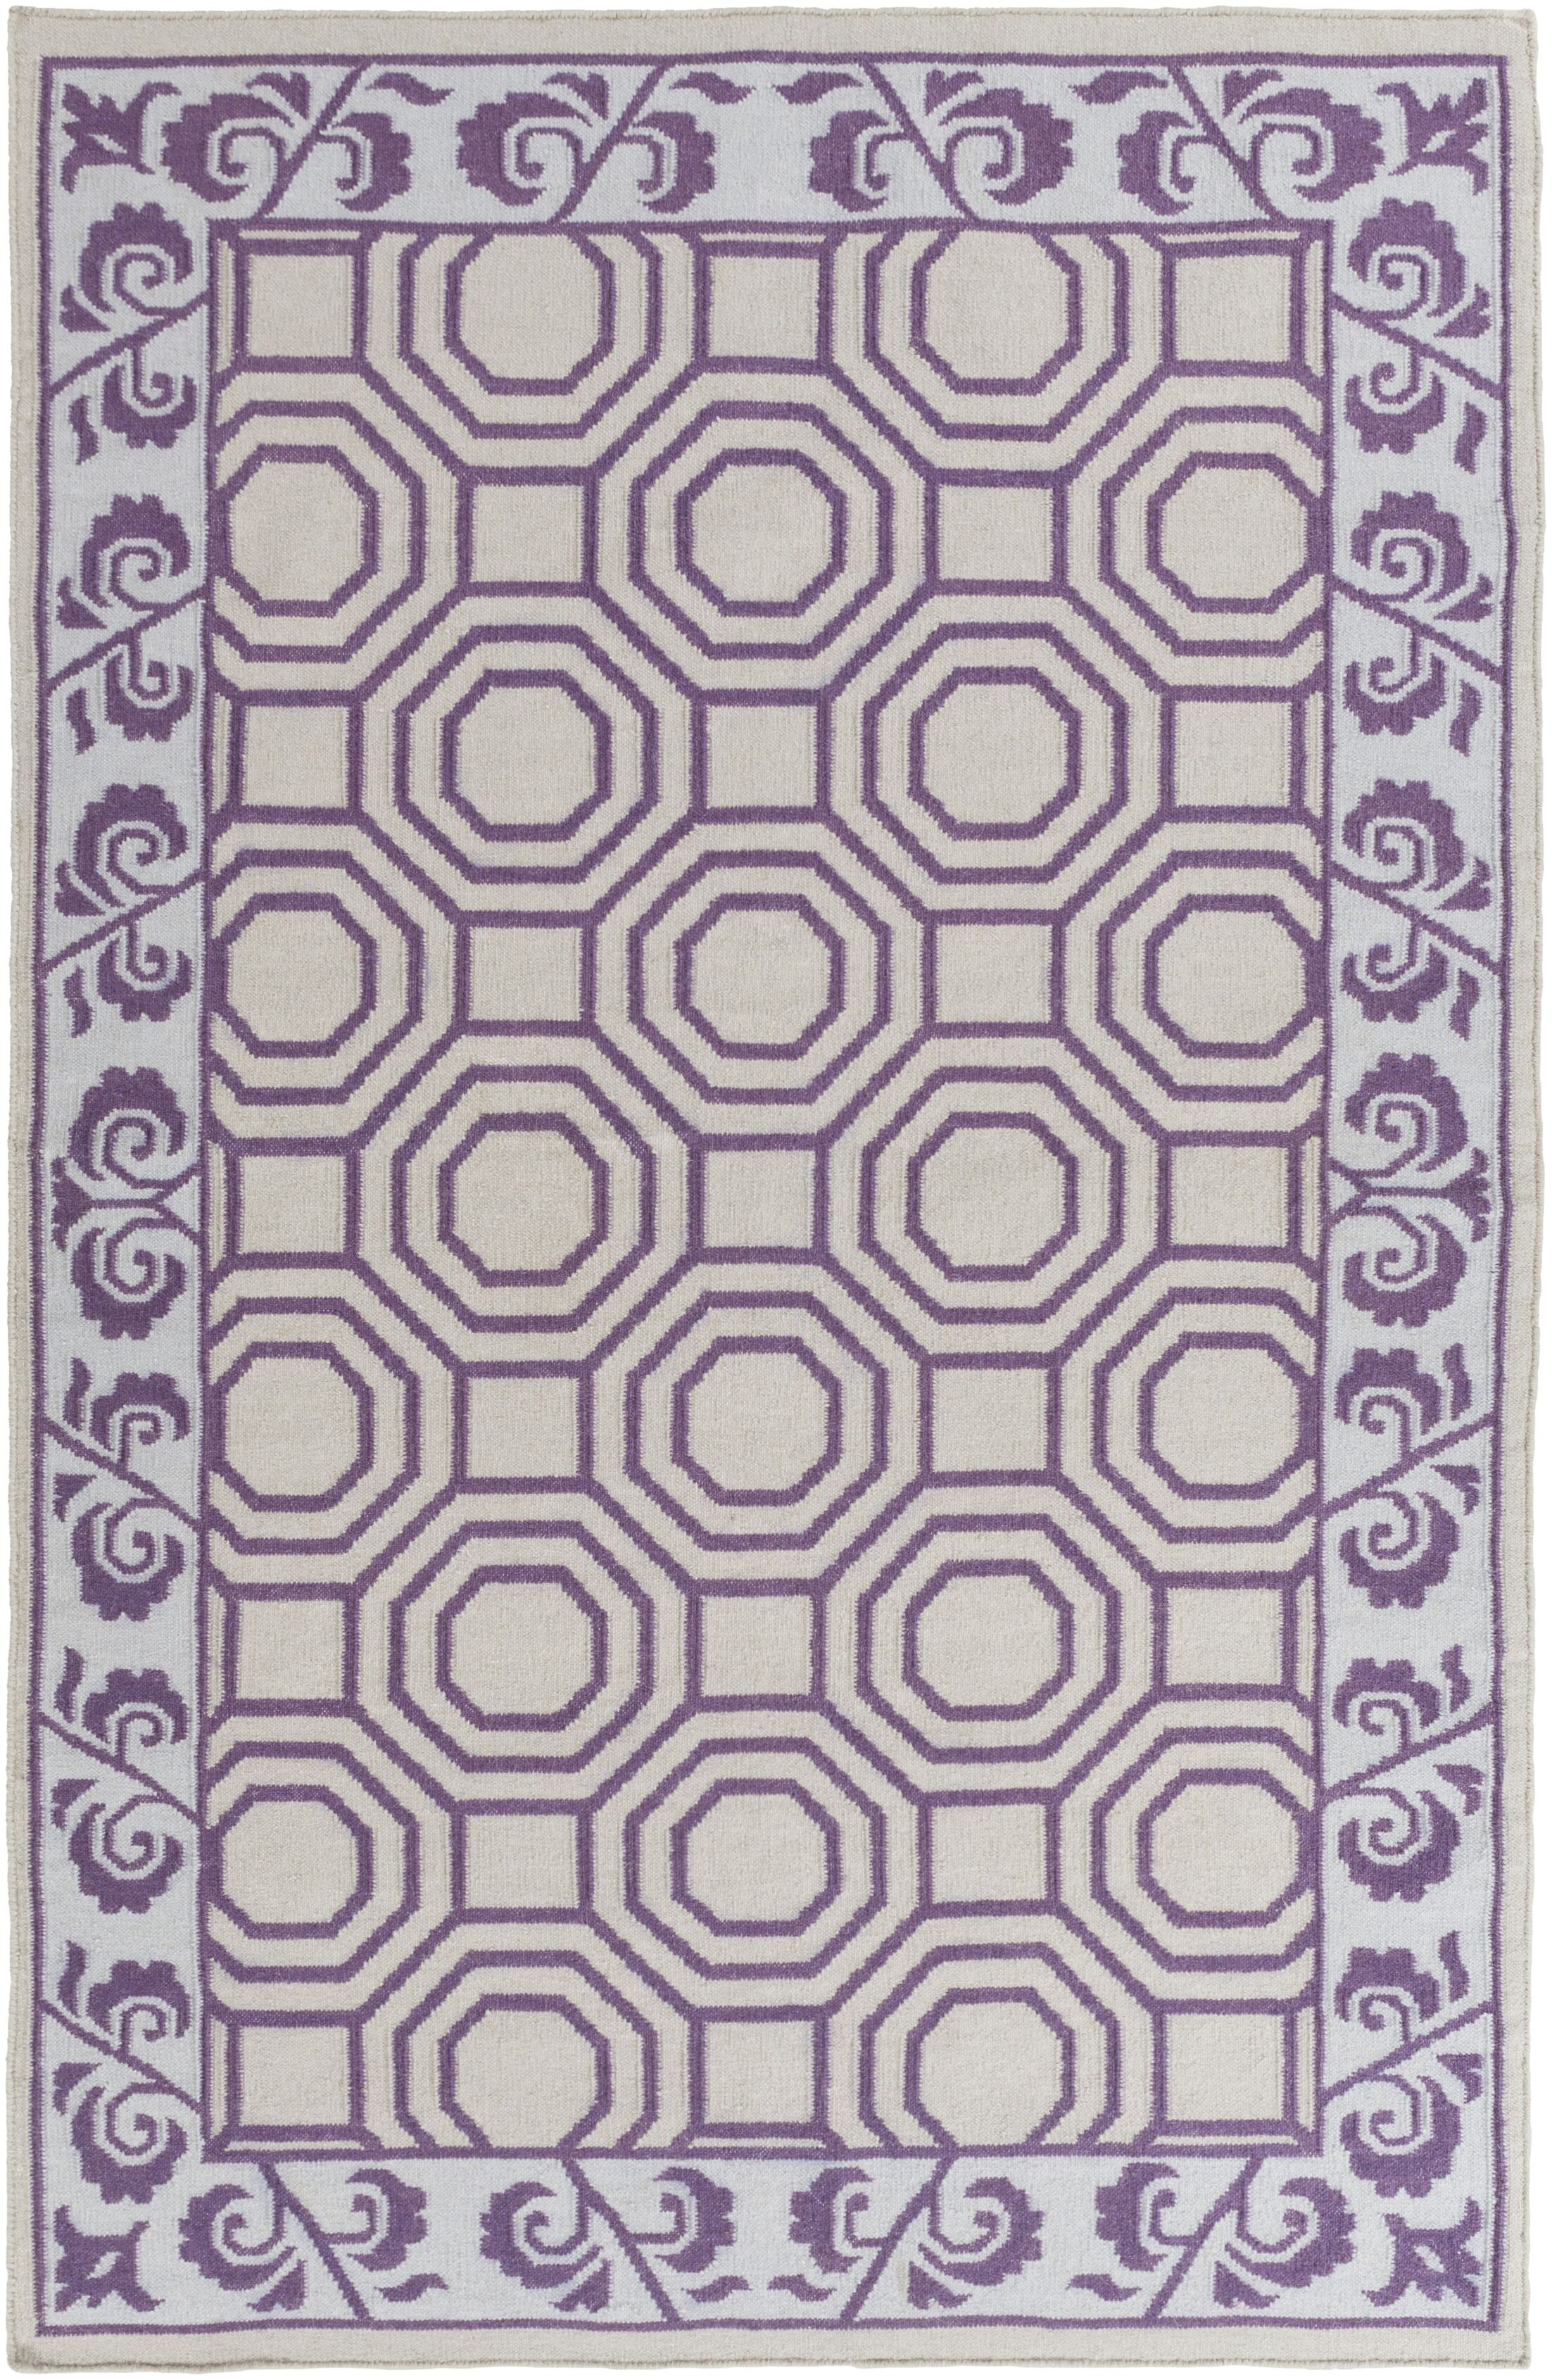 Morehead Light Gray/Violet Geometric Area Rug Rug Size: Rectangle 8' x 11'